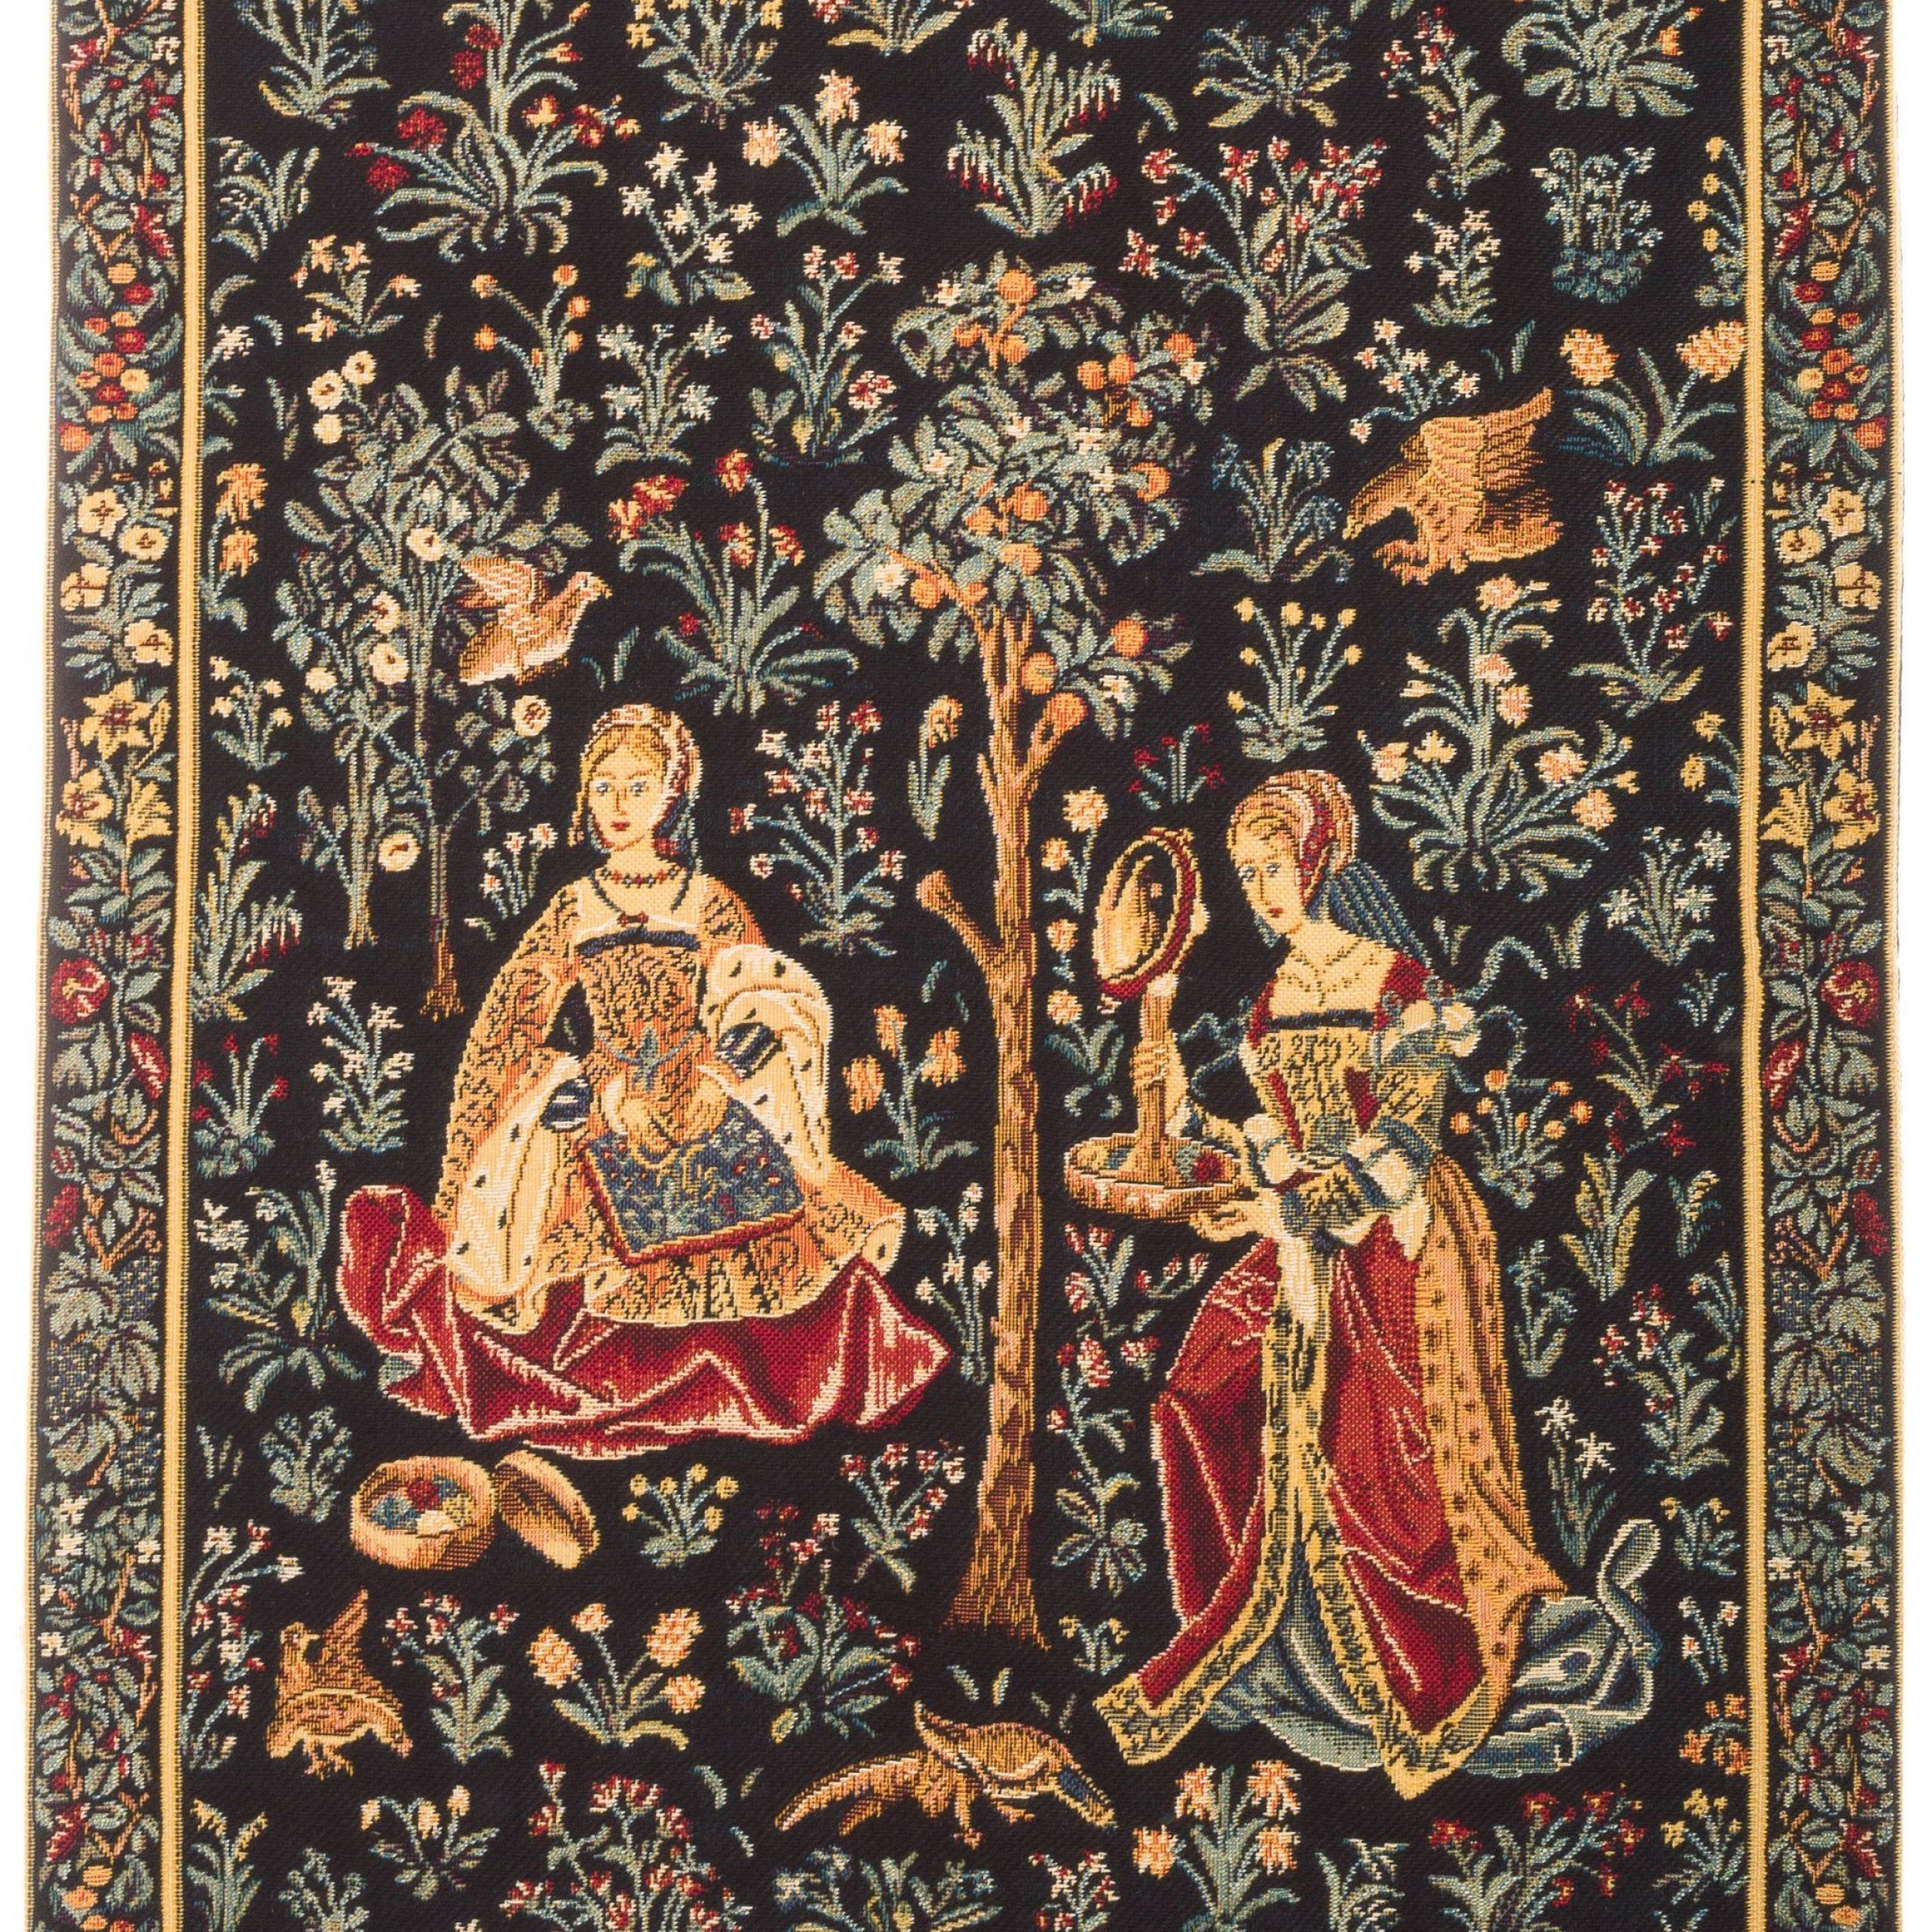 Medieval Tapestry Wall Hanging – Embroidery Scene Regarding 2017 Birds Face To Face I European Tapestries (View 4 of 20)